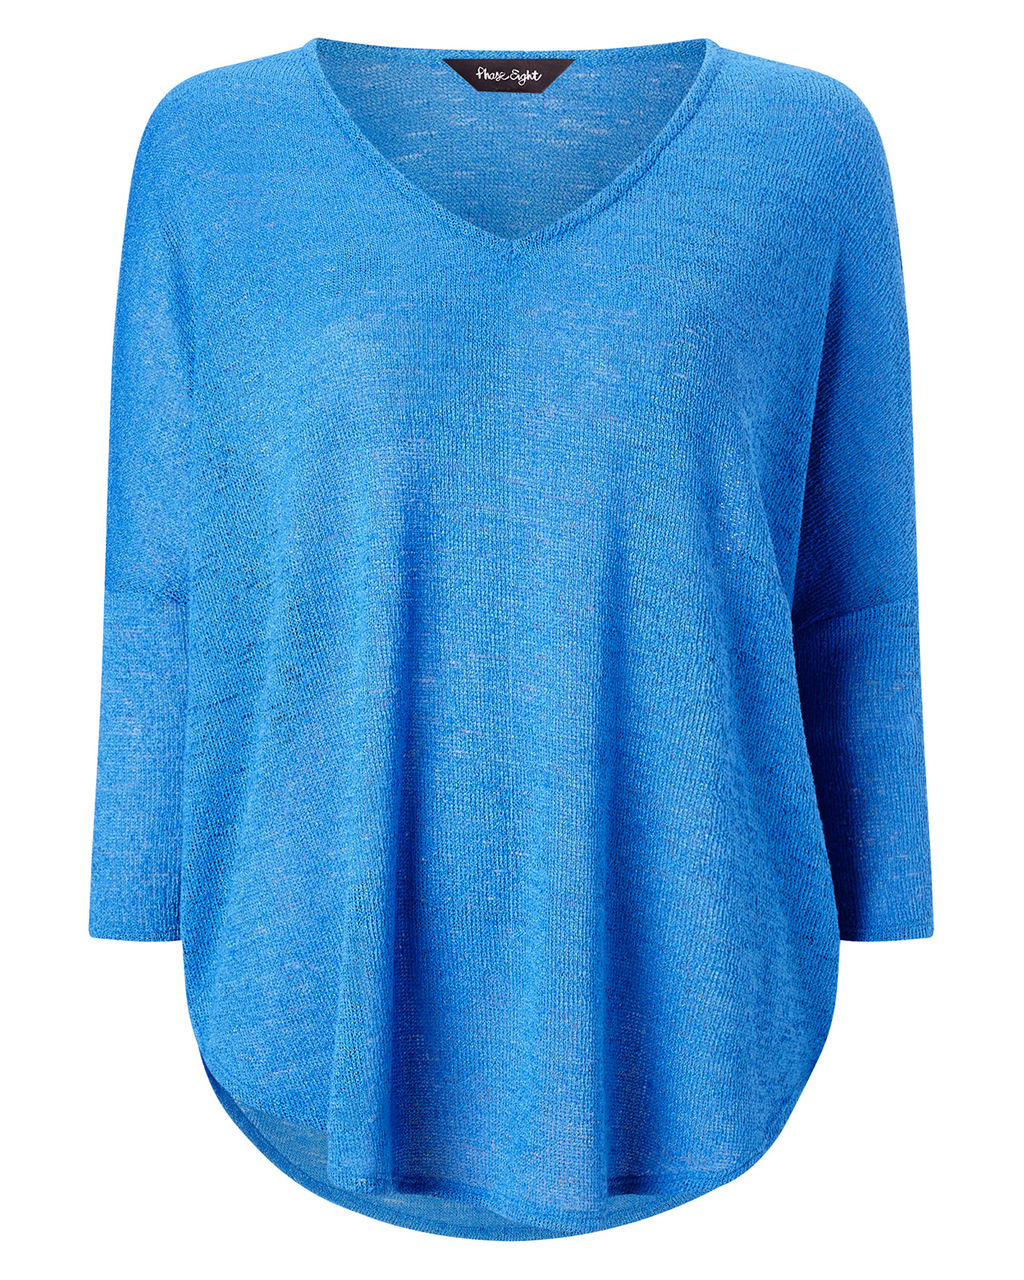 Philippa Top - neckline: low v-neck; pattern: plain; length: below the bottom; style: t-shirt; predominant colour: diva blue; occasions: casual; fibres: acrylic - 100%; fit: body skimming; sleeve length: 3/4 length; sleeve style: standard; pattern type: fabric; texture group: jersey - stretchy/drapey; season: a/w 2015